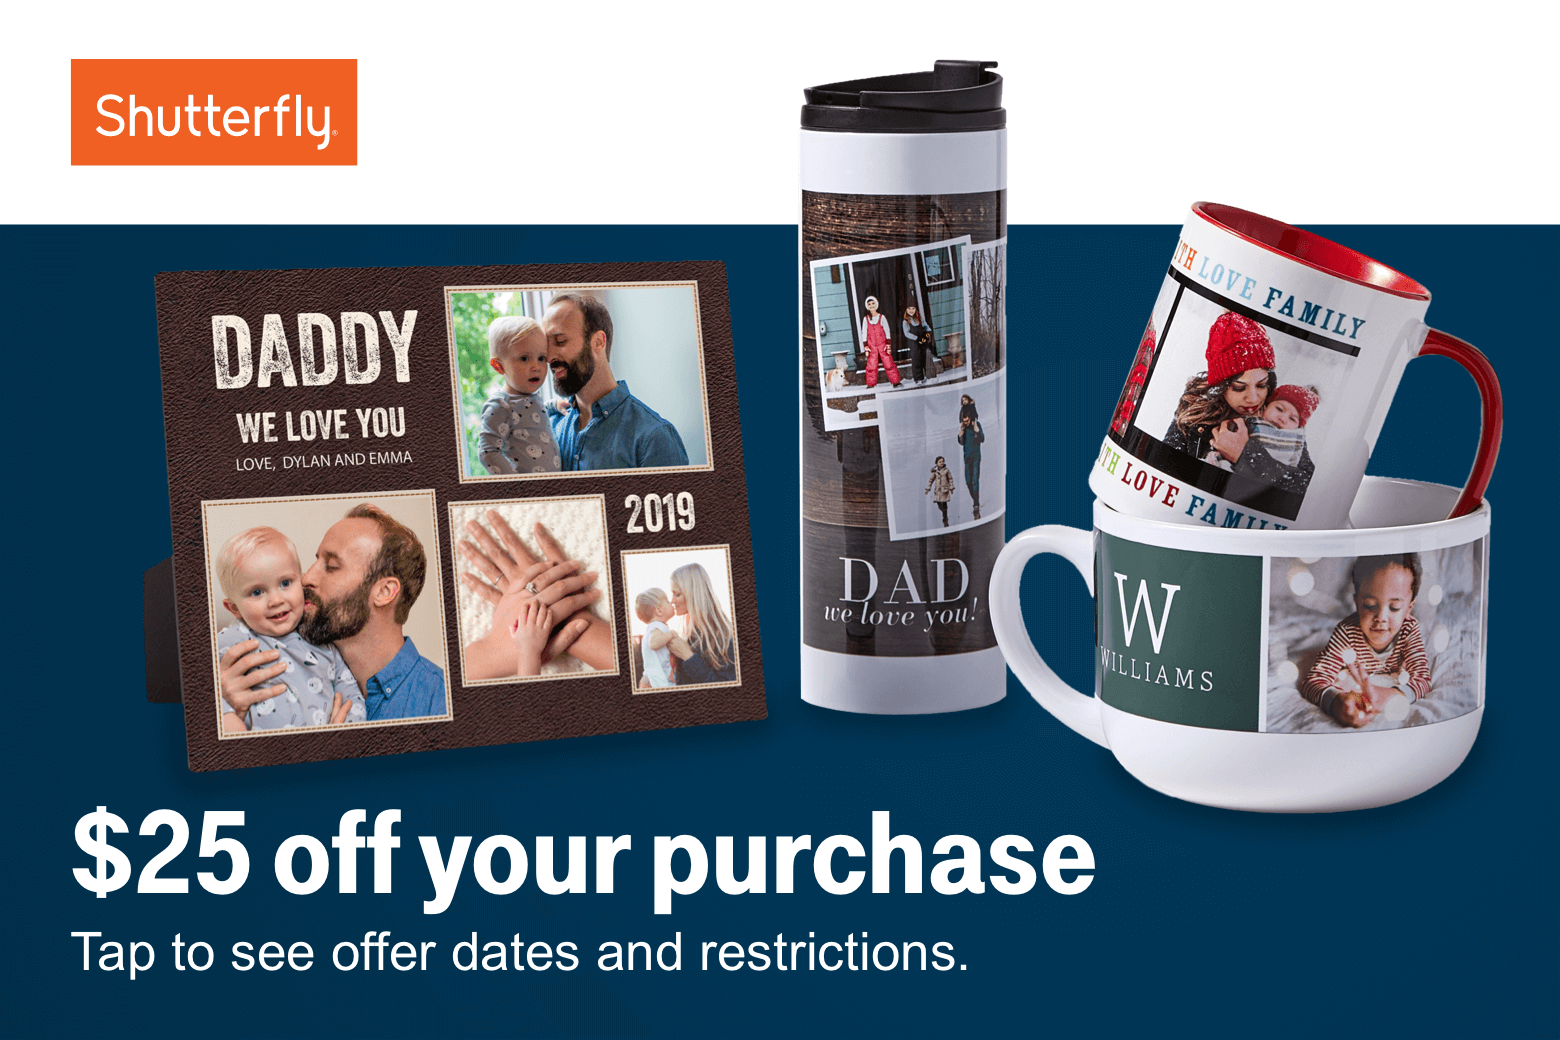 Shutterfly. Twenty-five dollars off your purchase. Tap to see offer dates and restrictions.